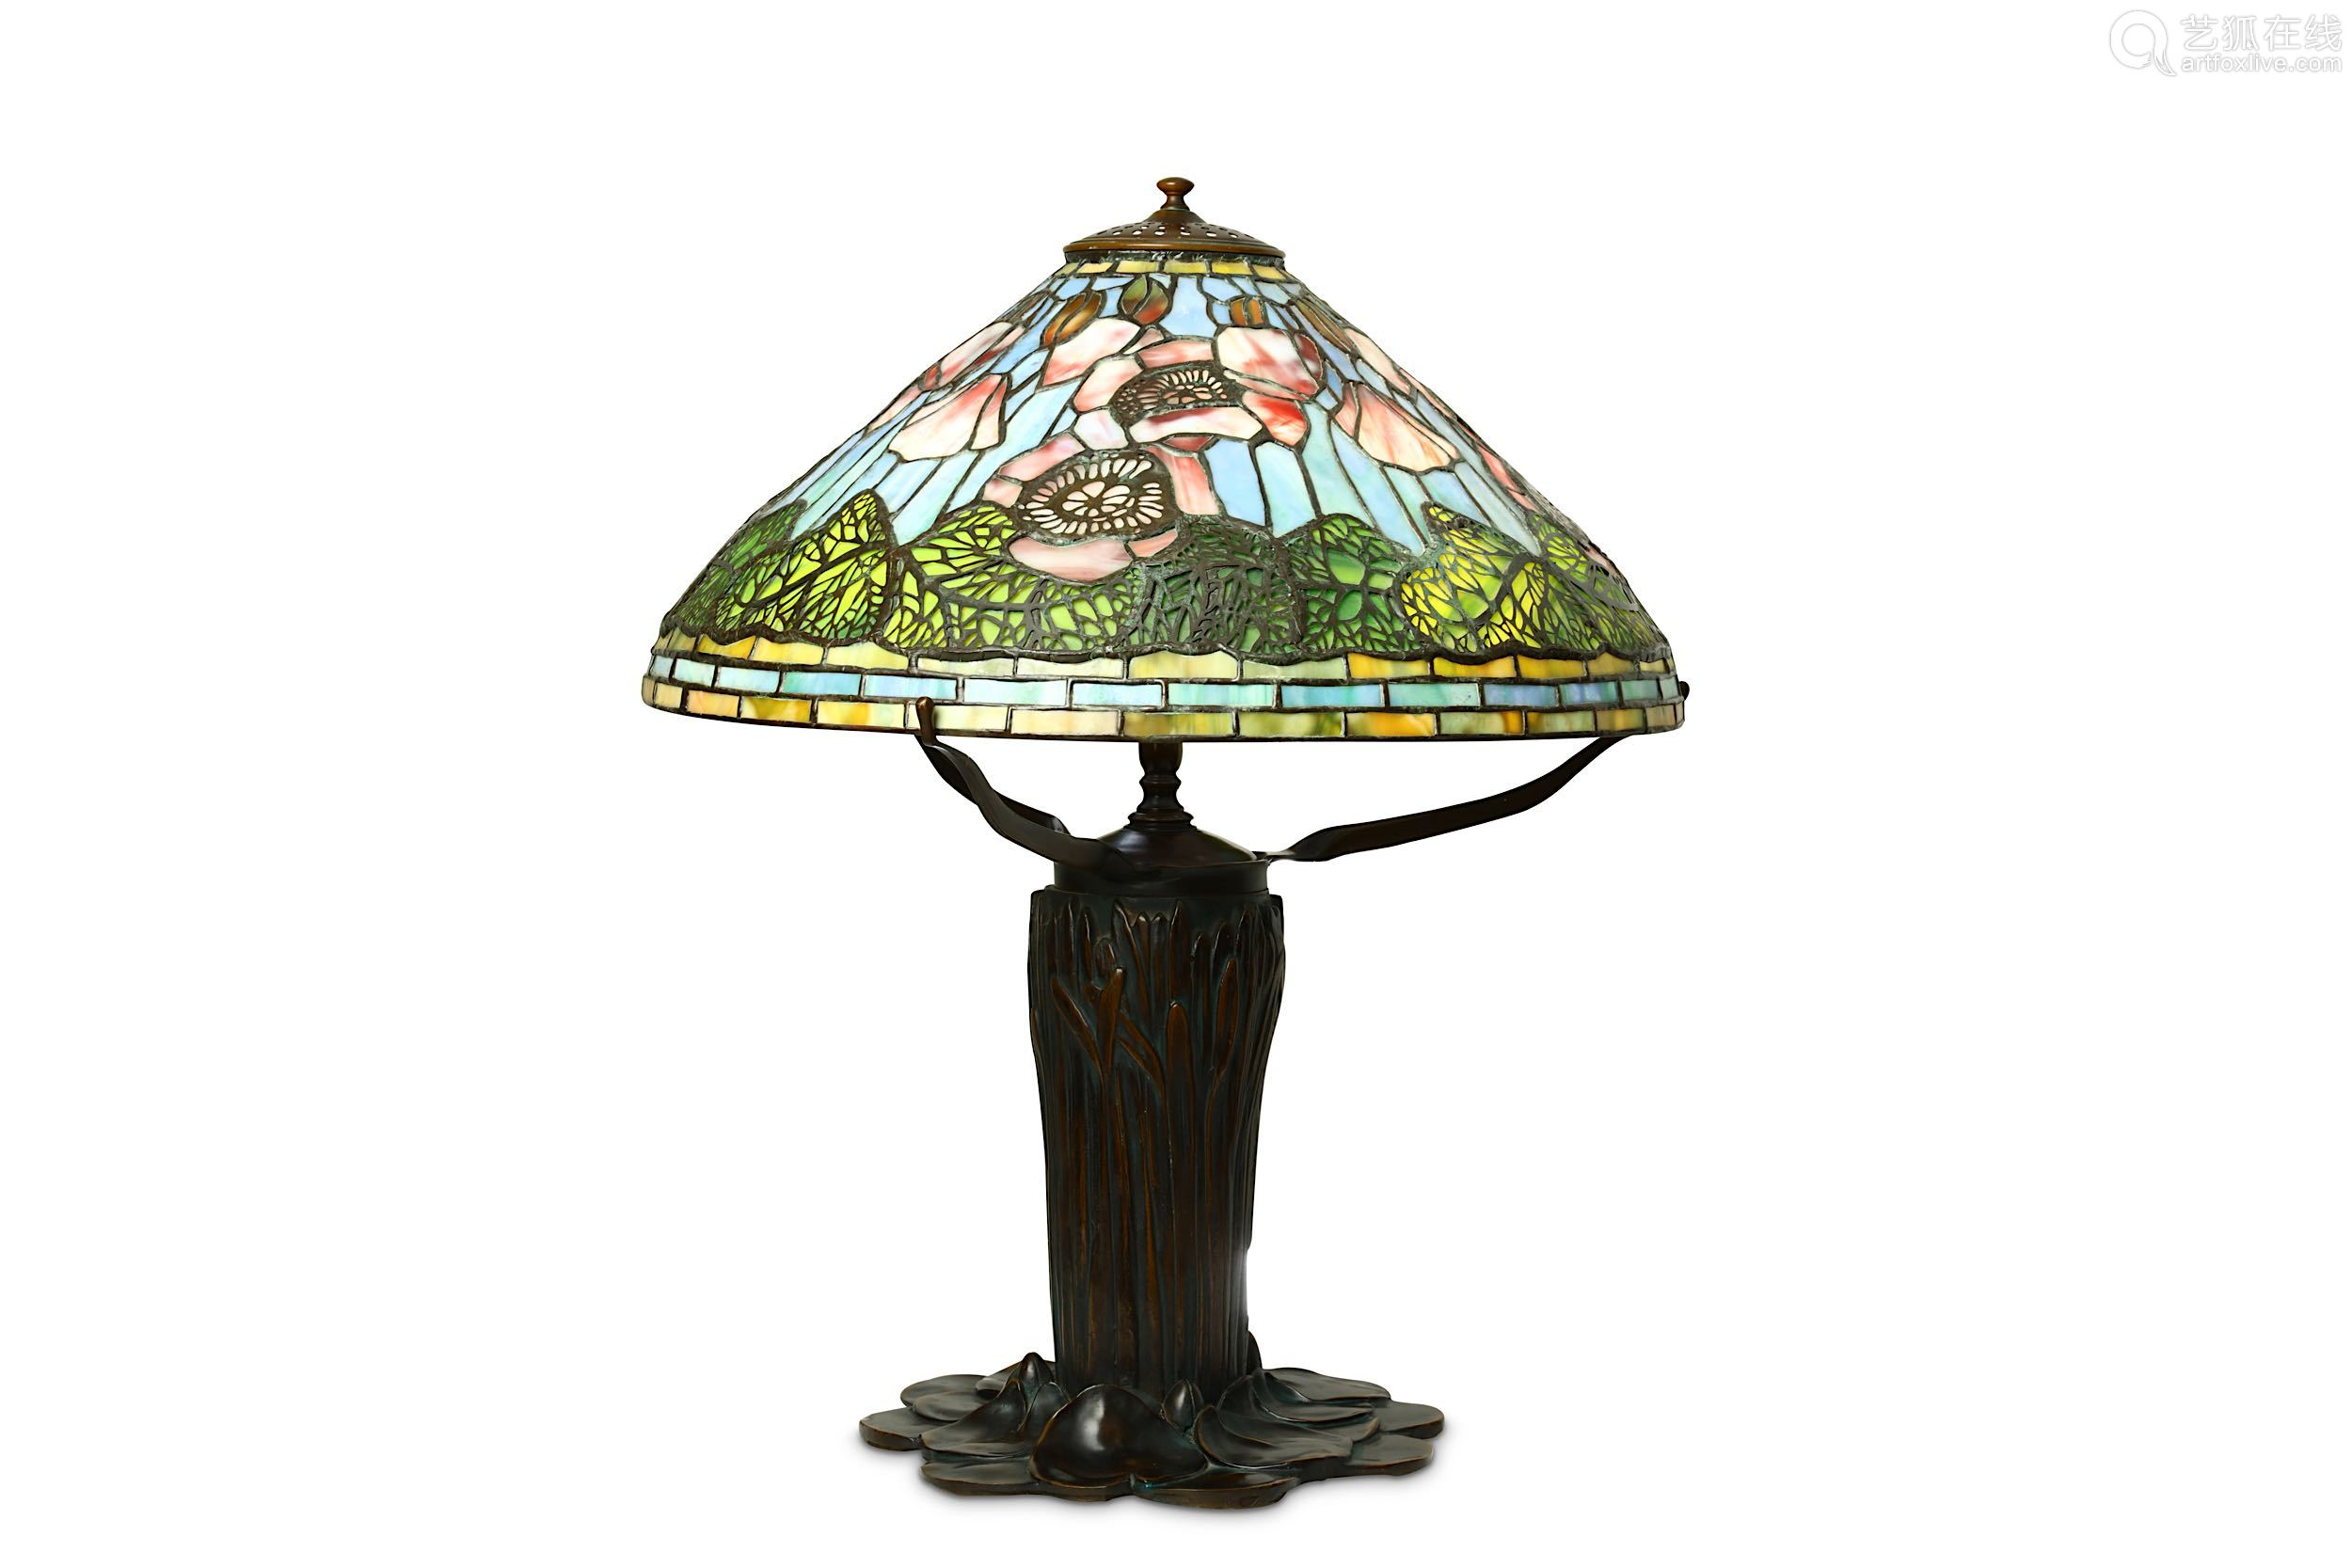 A TIFFANY STYLE BRONZE TABLE LAMP.